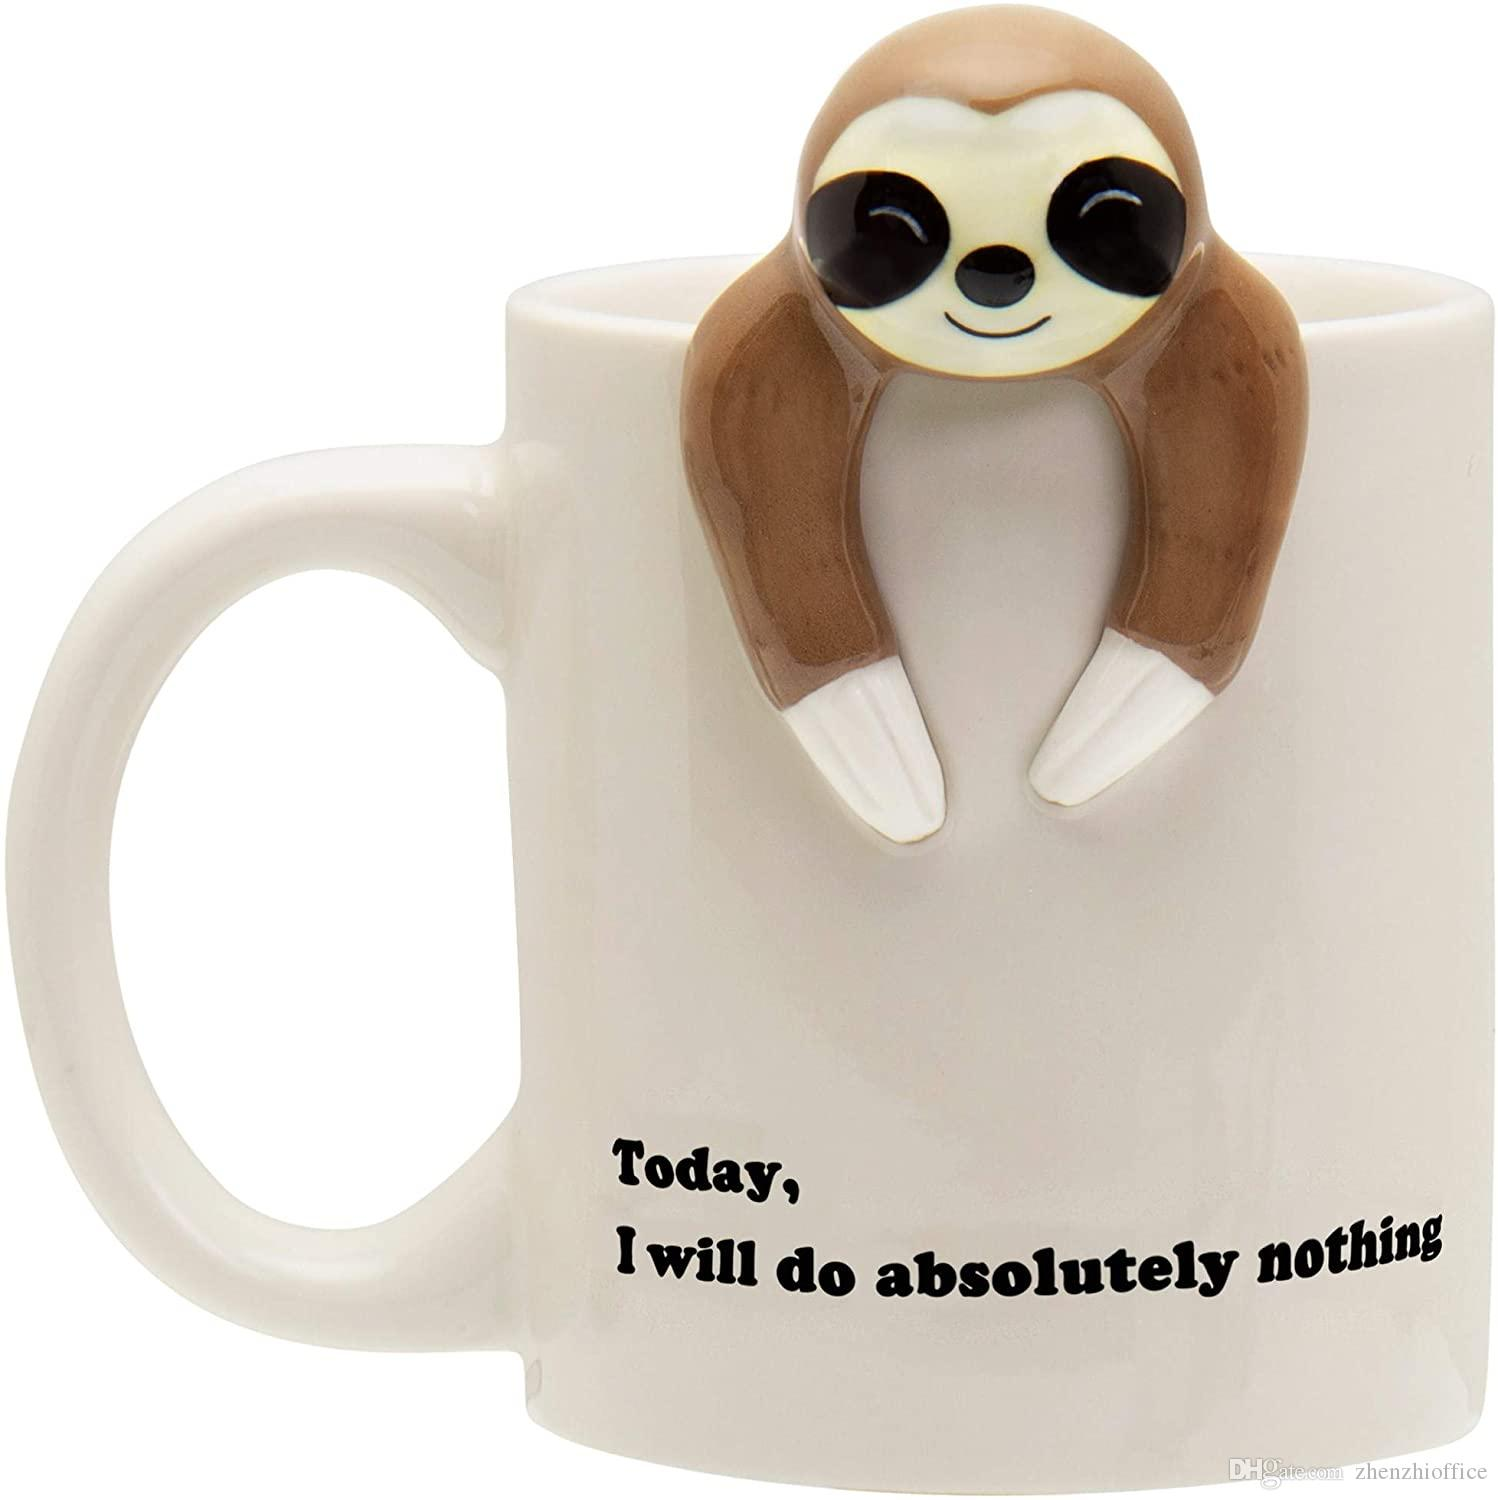 Sloth Lazy Funny Coffee Mug Funny Gifts For Women And Men 12 Oz Personalized Photo Coffee Mugs Personalized Photo Mugs From Zhenzhioffice 30 16 Dhgate Com